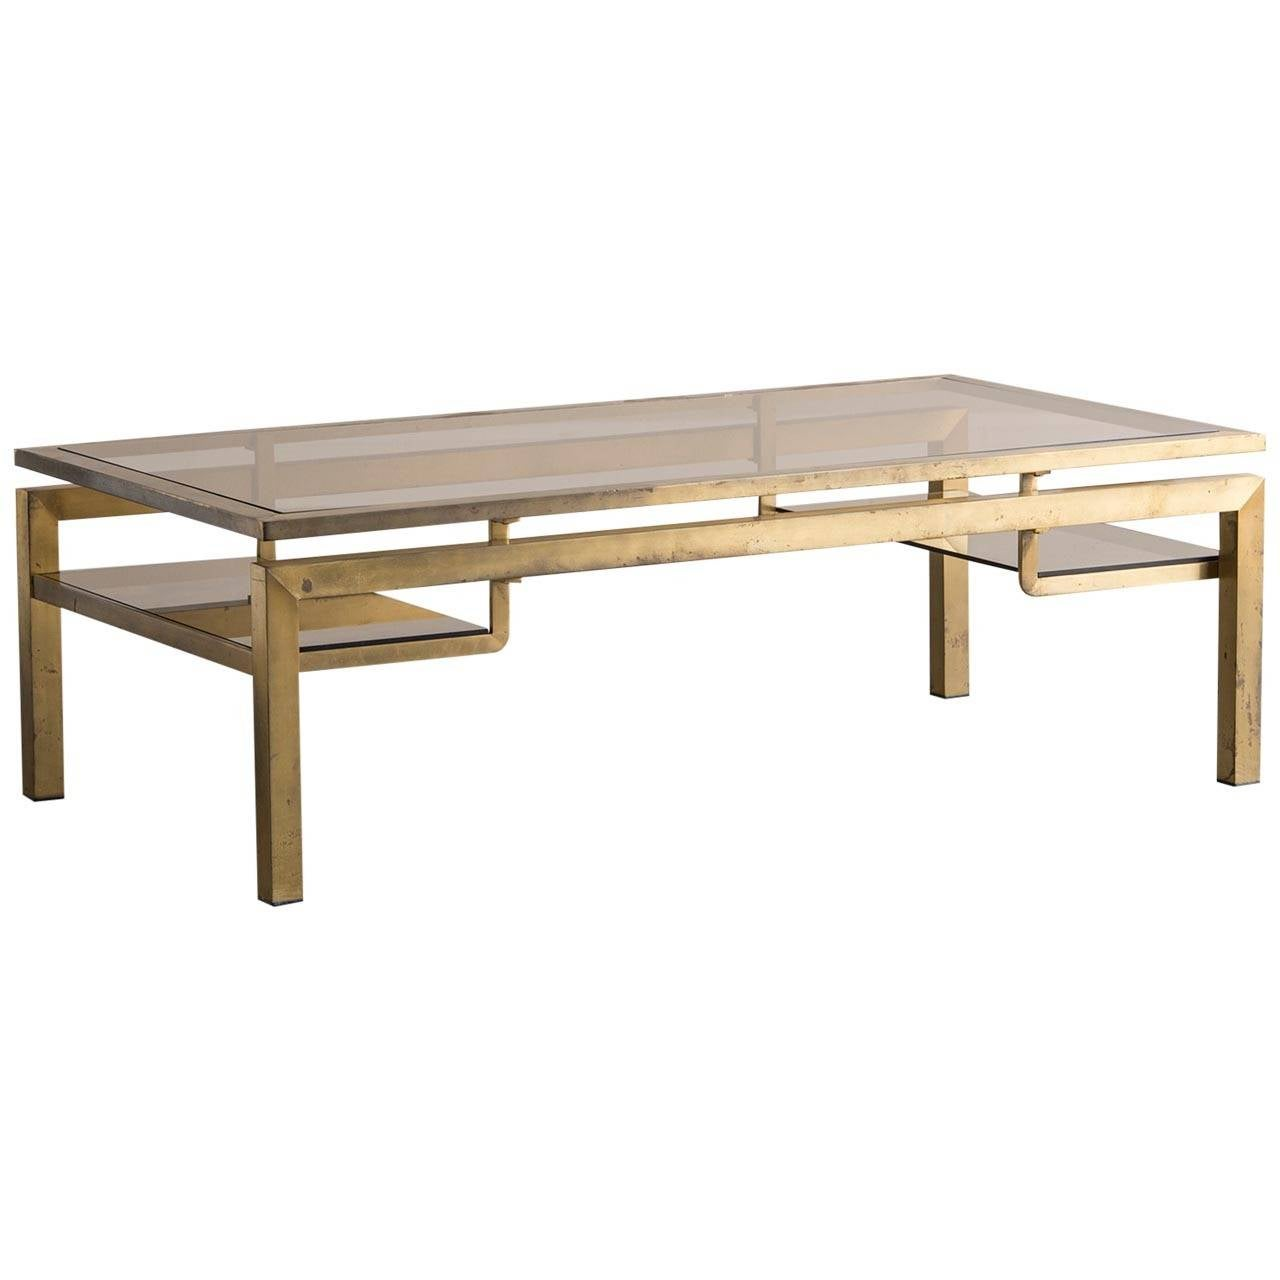 Messing Couchtisch Mit Glasplatte Vintage Brass Coffee Table With Smoked Glass Top France